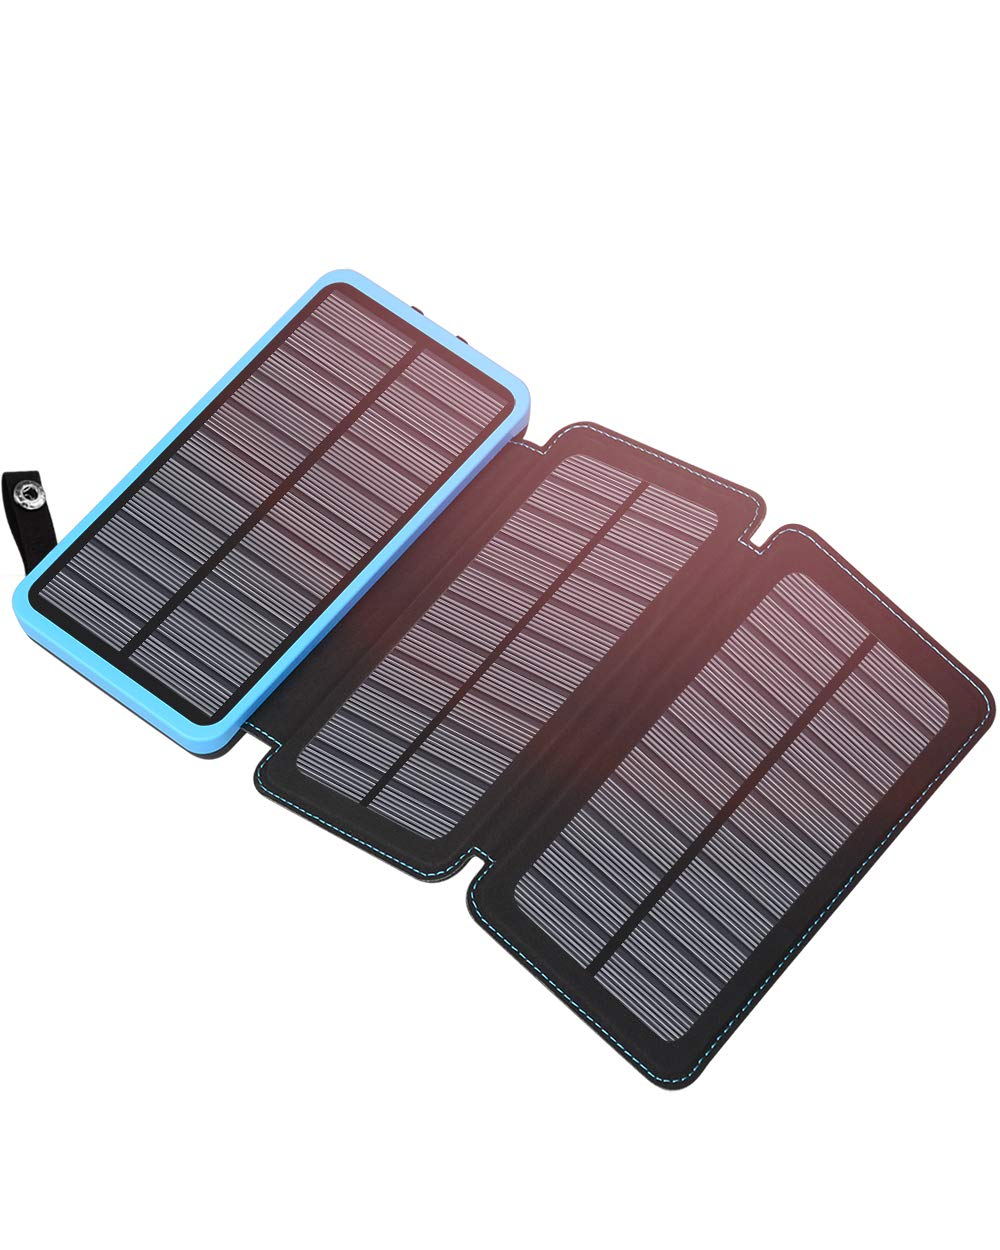 Hiluckey Solar Charger 24000mAh, Solar Power Bank with 3 Solar Panels External Battery Charger 2 USB Ports 2.1A Output for Smartphone, Tablet (88Wh)